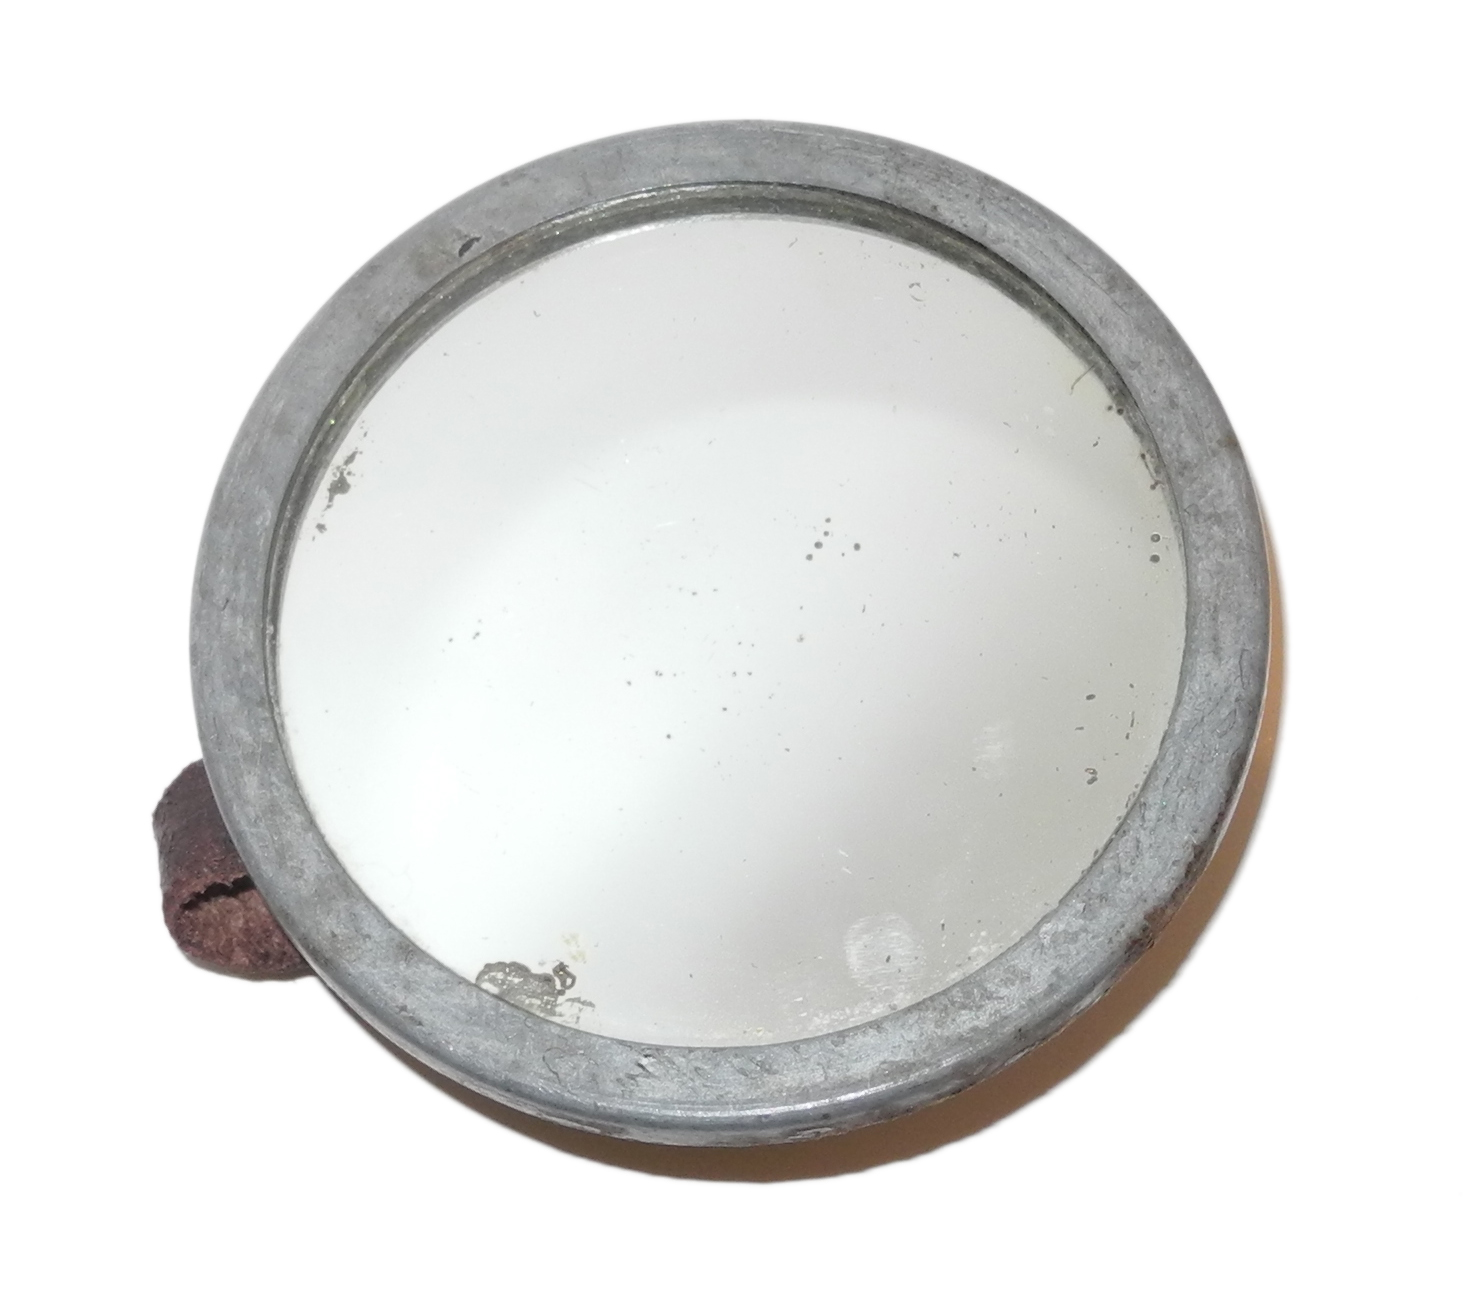 RAF 1940 dated signal mirror